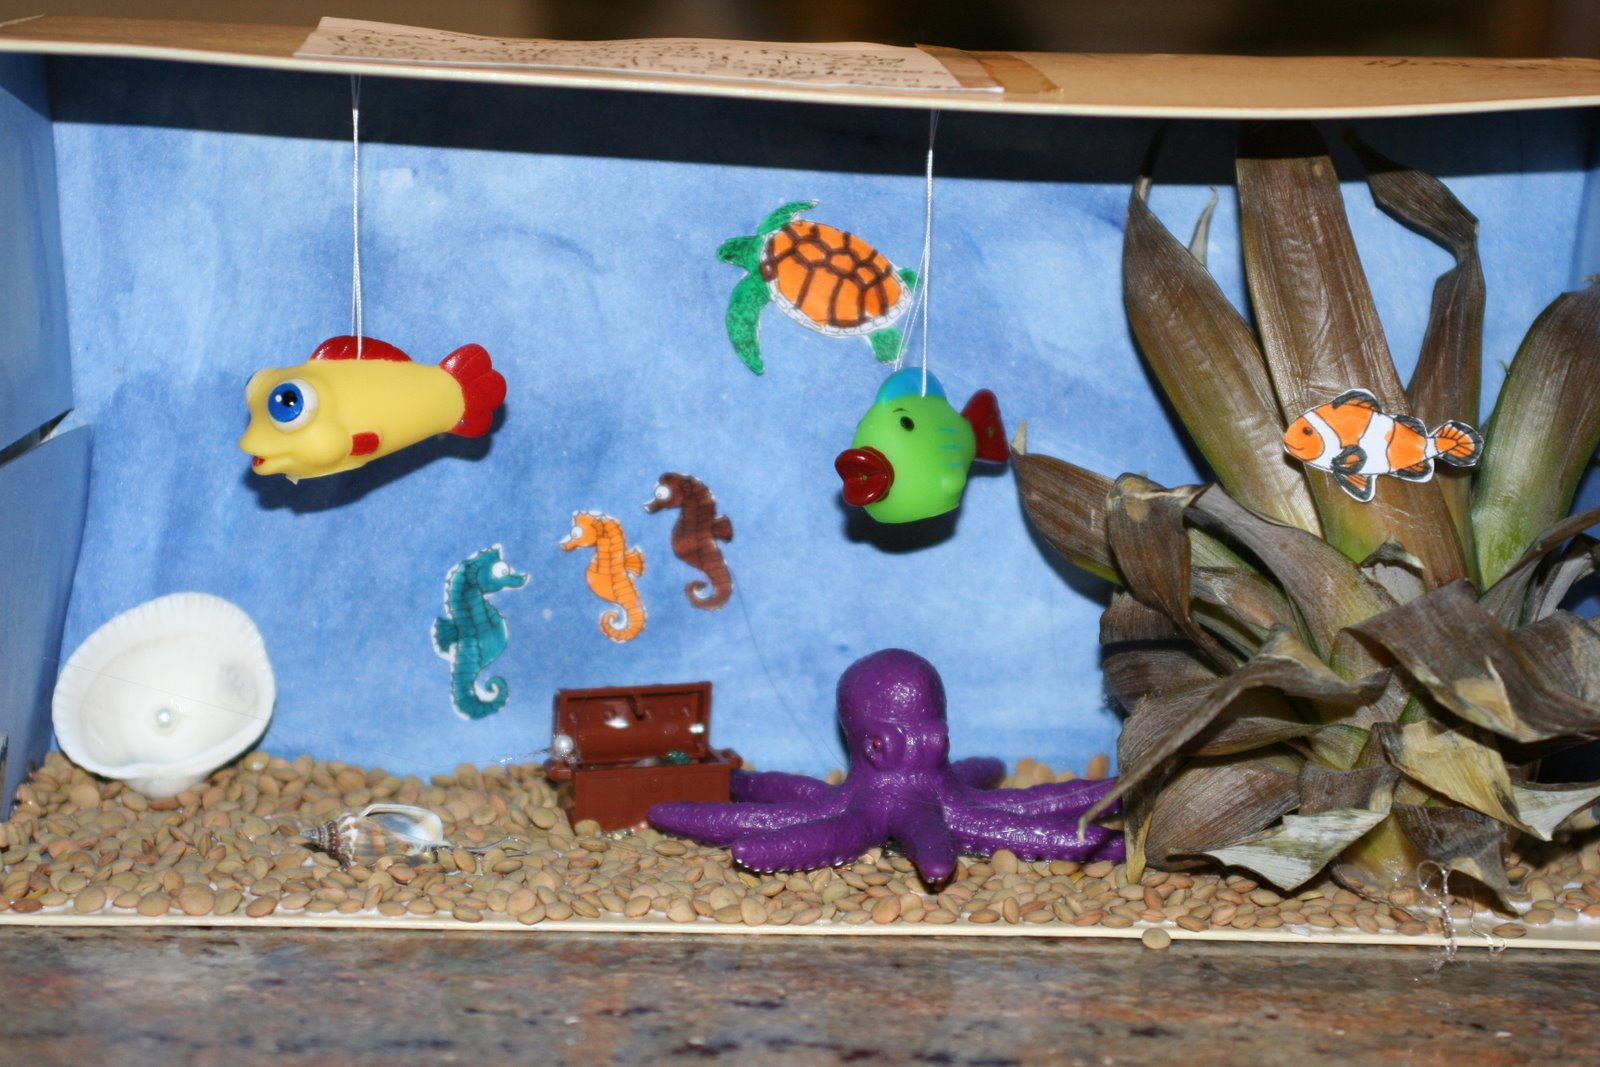 Kids Activities Under the Sea Diorama by Artea Art School Community and Party Venue